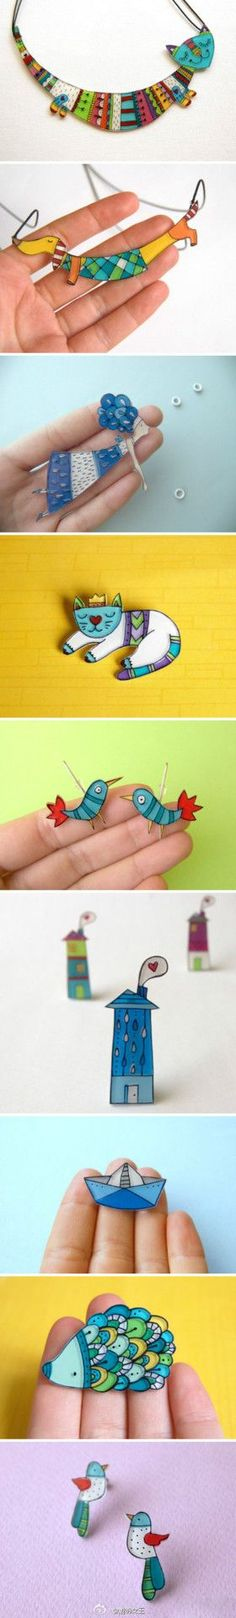 Shrinky Dinks!!!!!!!!!! ;)- really inspiring website too!